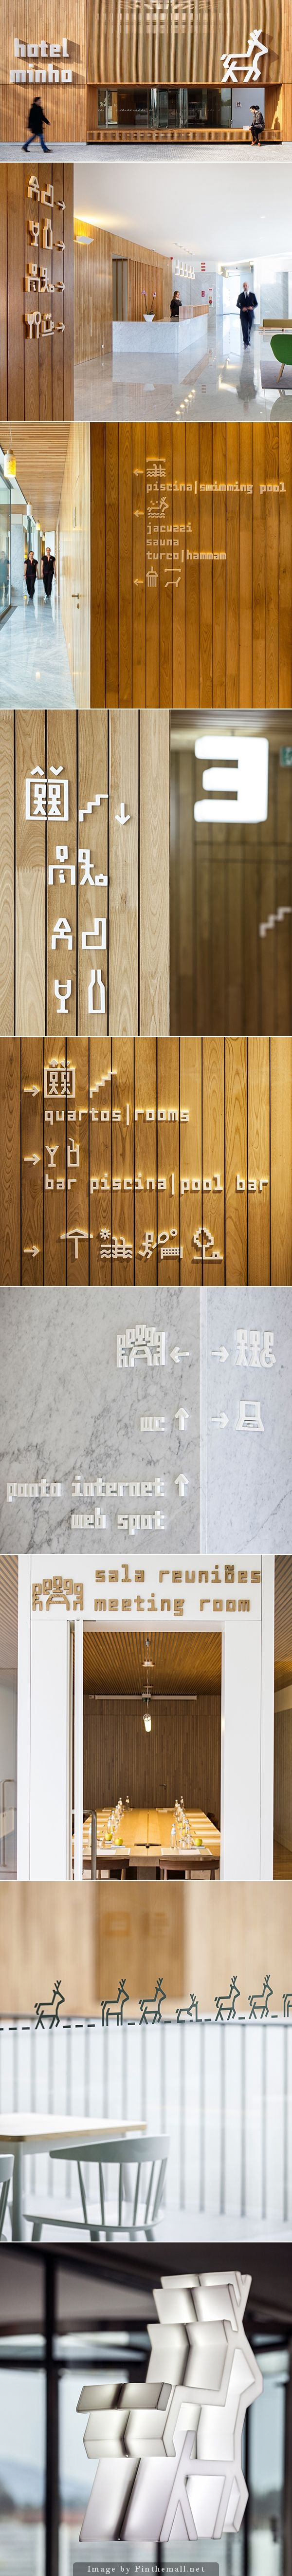 Hotel Minho, Portugal #Signage #office #interior design #public place #toilet #wallpaint #wayfinding #indicazione #indication #officeinterior #sign #icons #pictograms #signage #direction #directional #bath #toilet #floor #lift